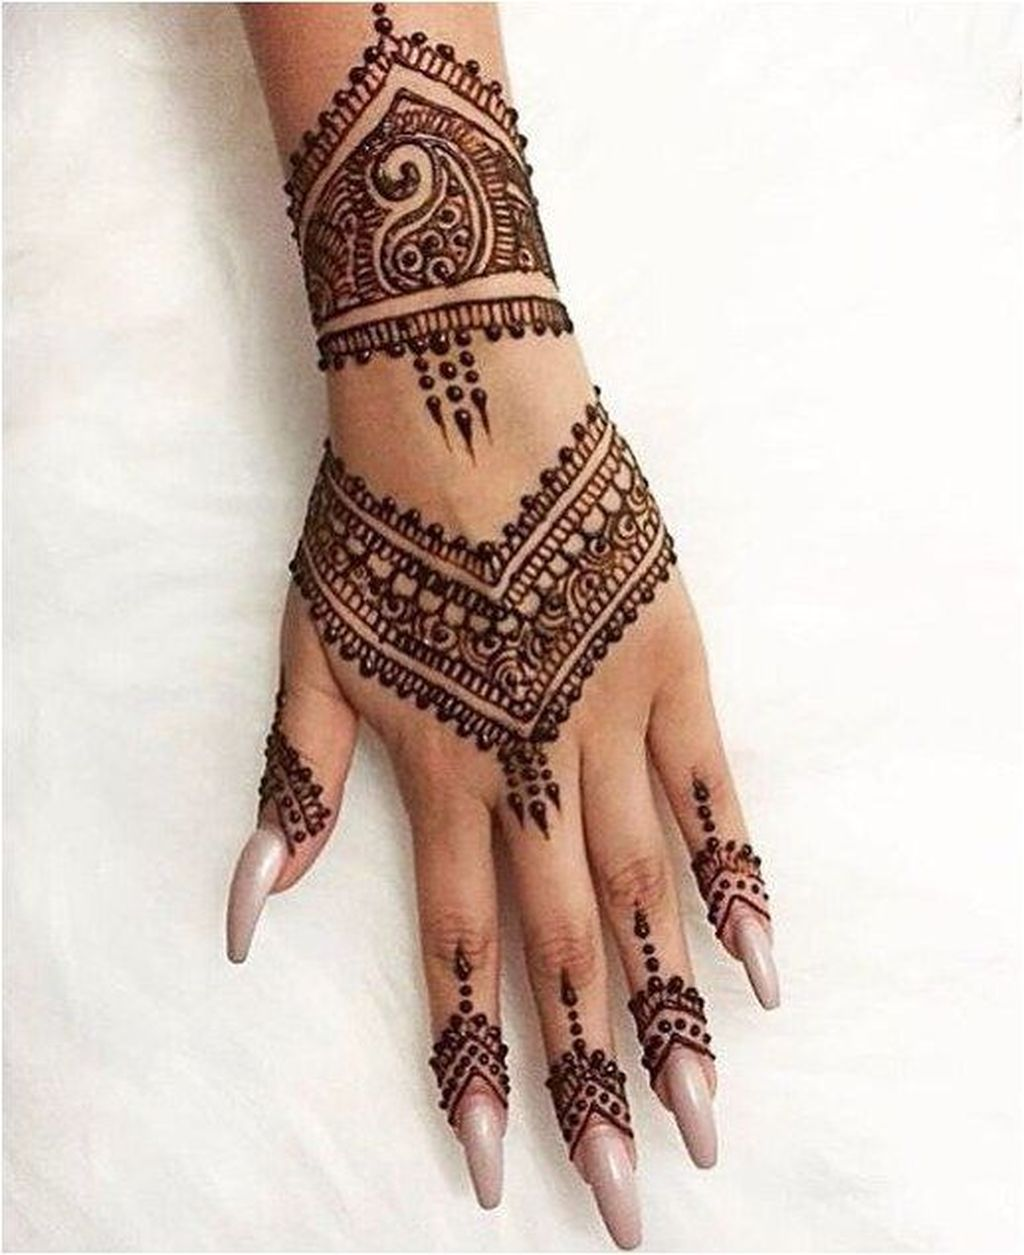 How To Get Rid Of A Henna Tattoo Instantly